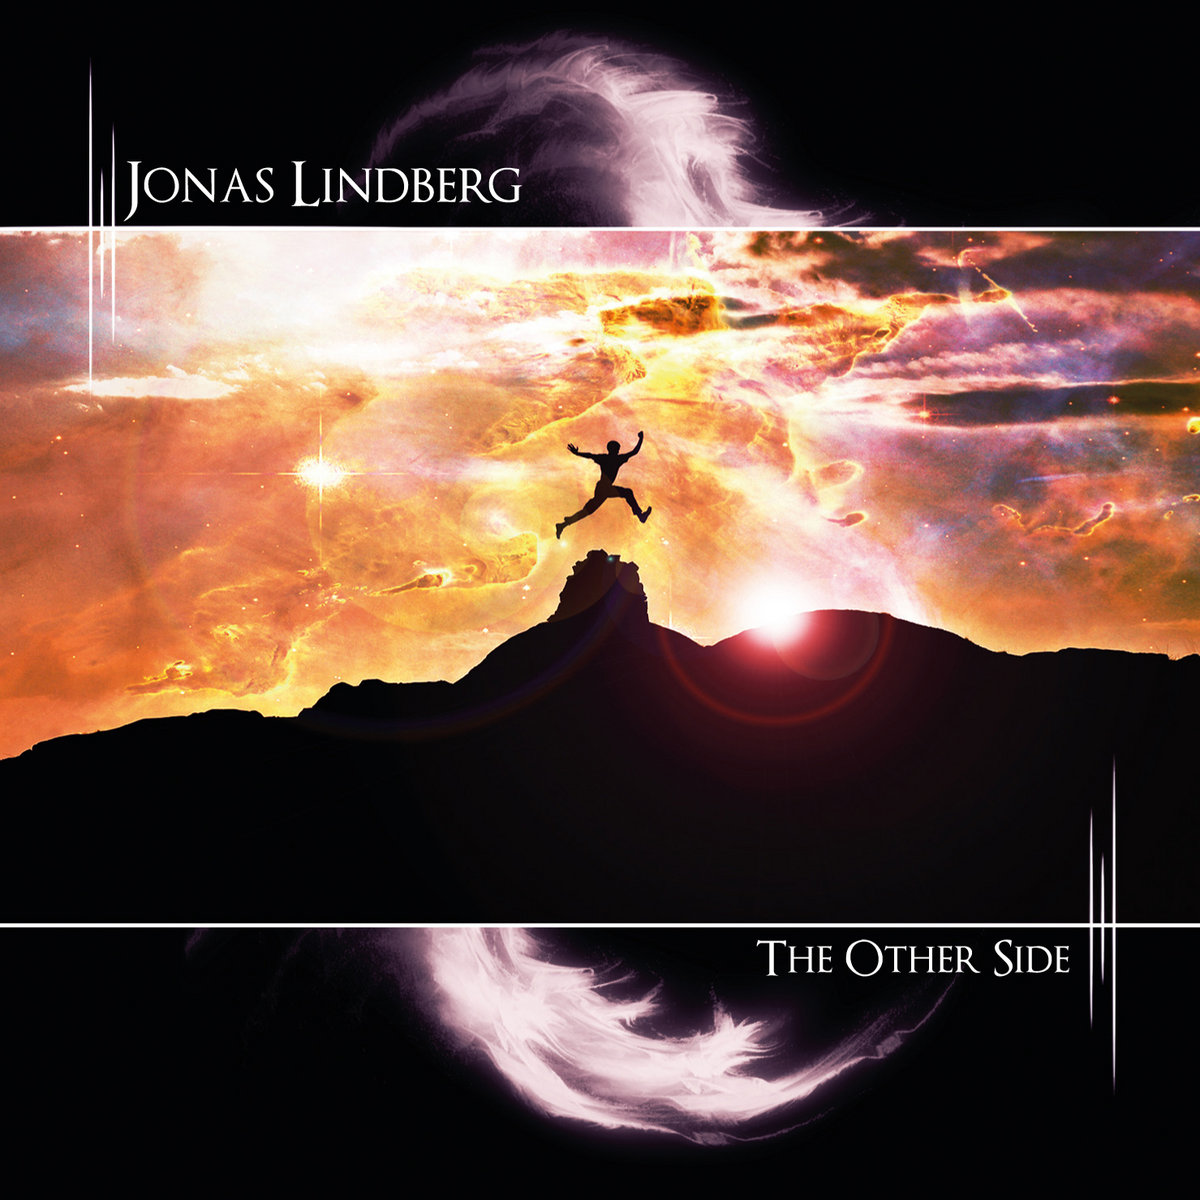 The other side by jonas lindberg the other side